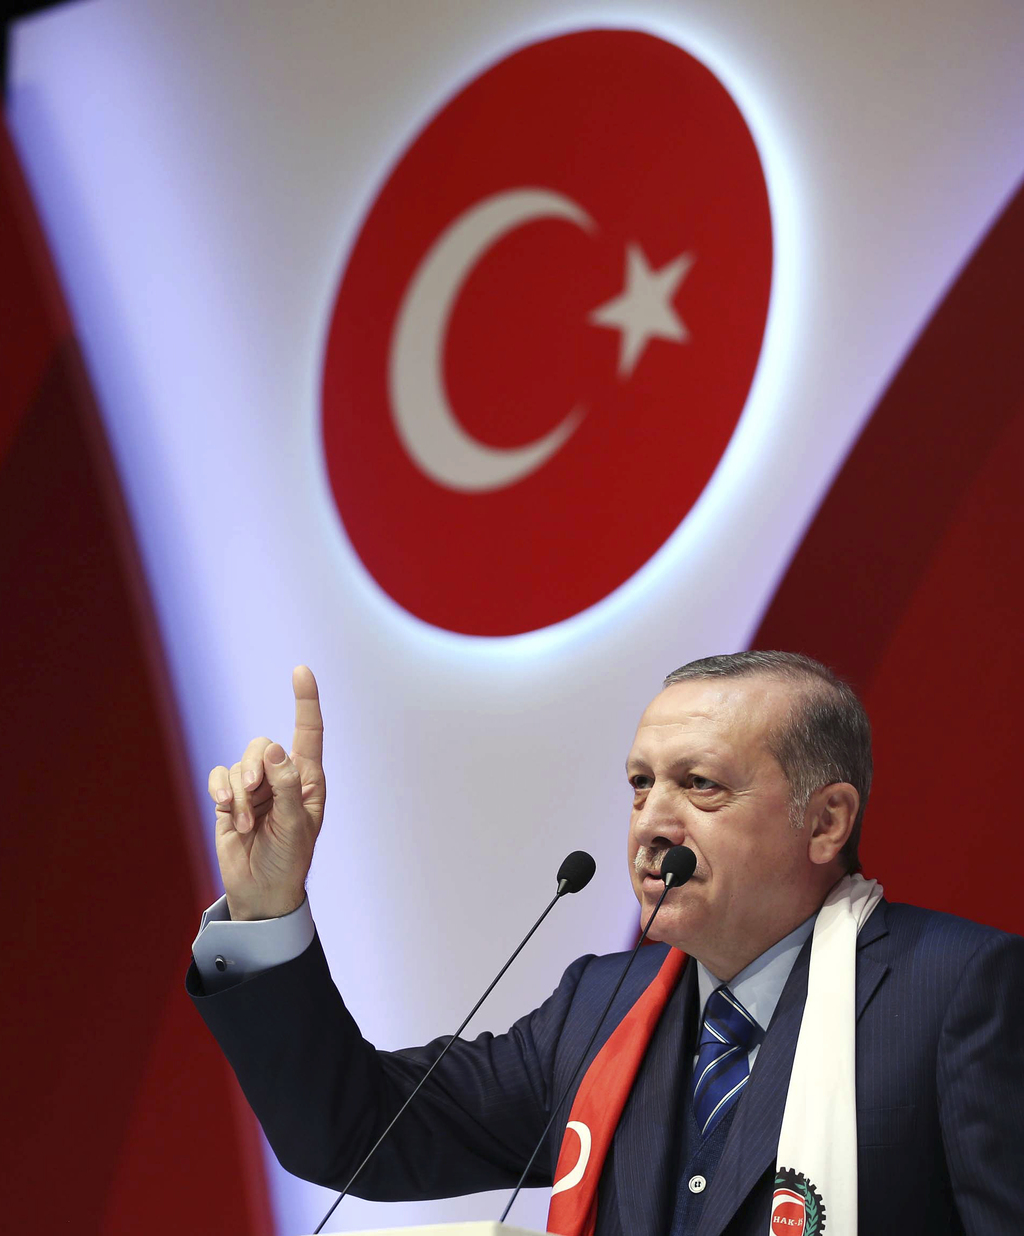 Turkey's President Recep Tayyip Erdogan addresses a meeting in Istanbul, Saturday, March 4, 2017. Tensions flared between Ankara and Be...